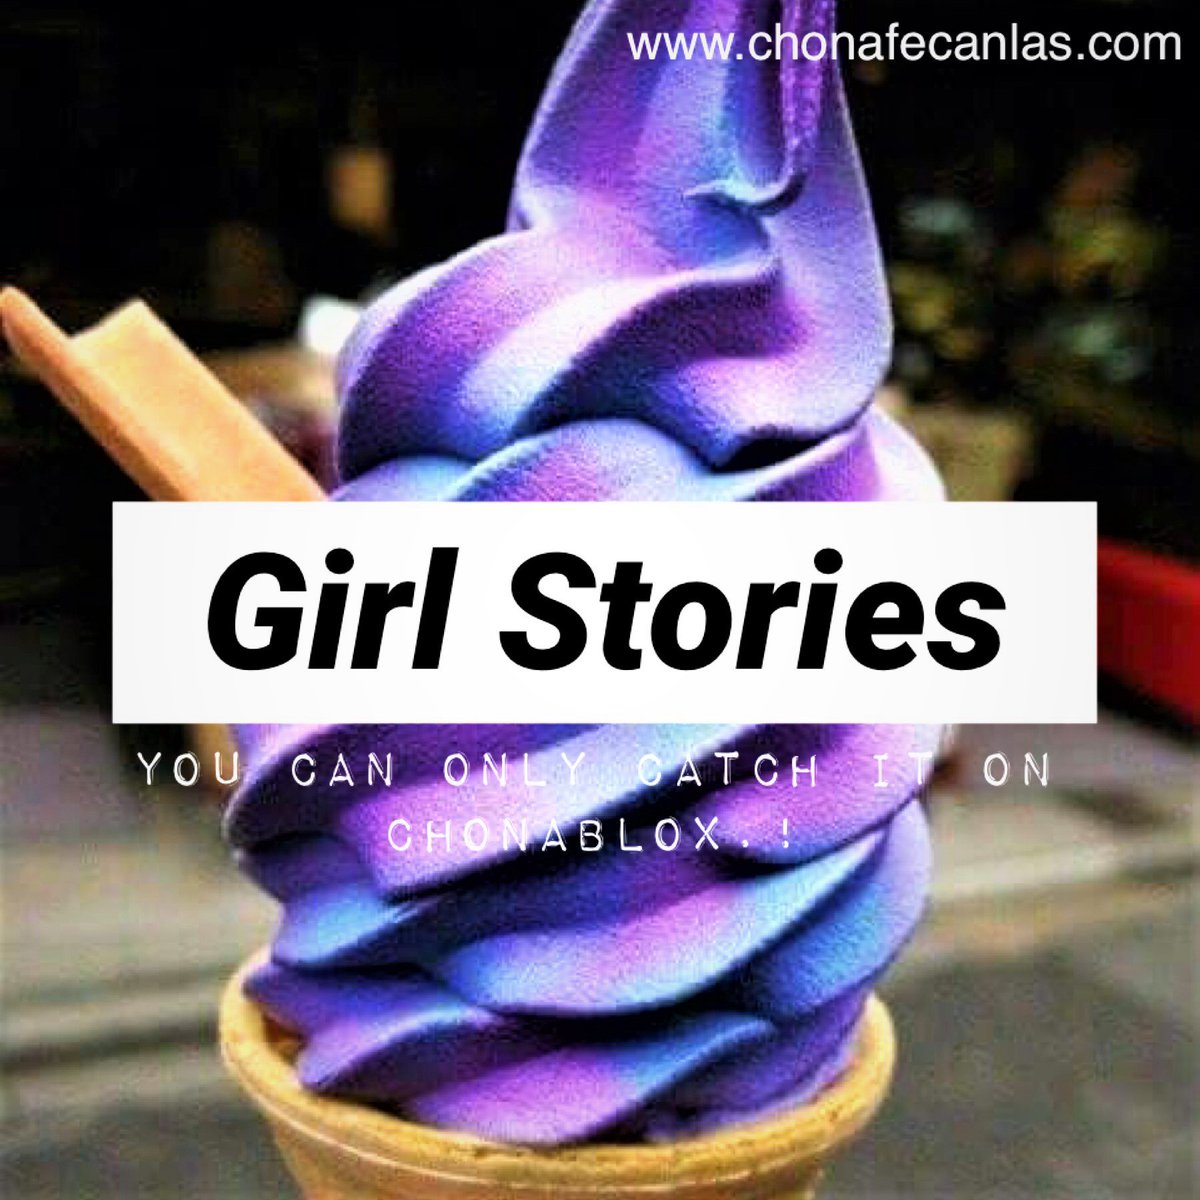 Don't miss out! Updates come errday. Only on  🍦#girlstories #bloxcommunications